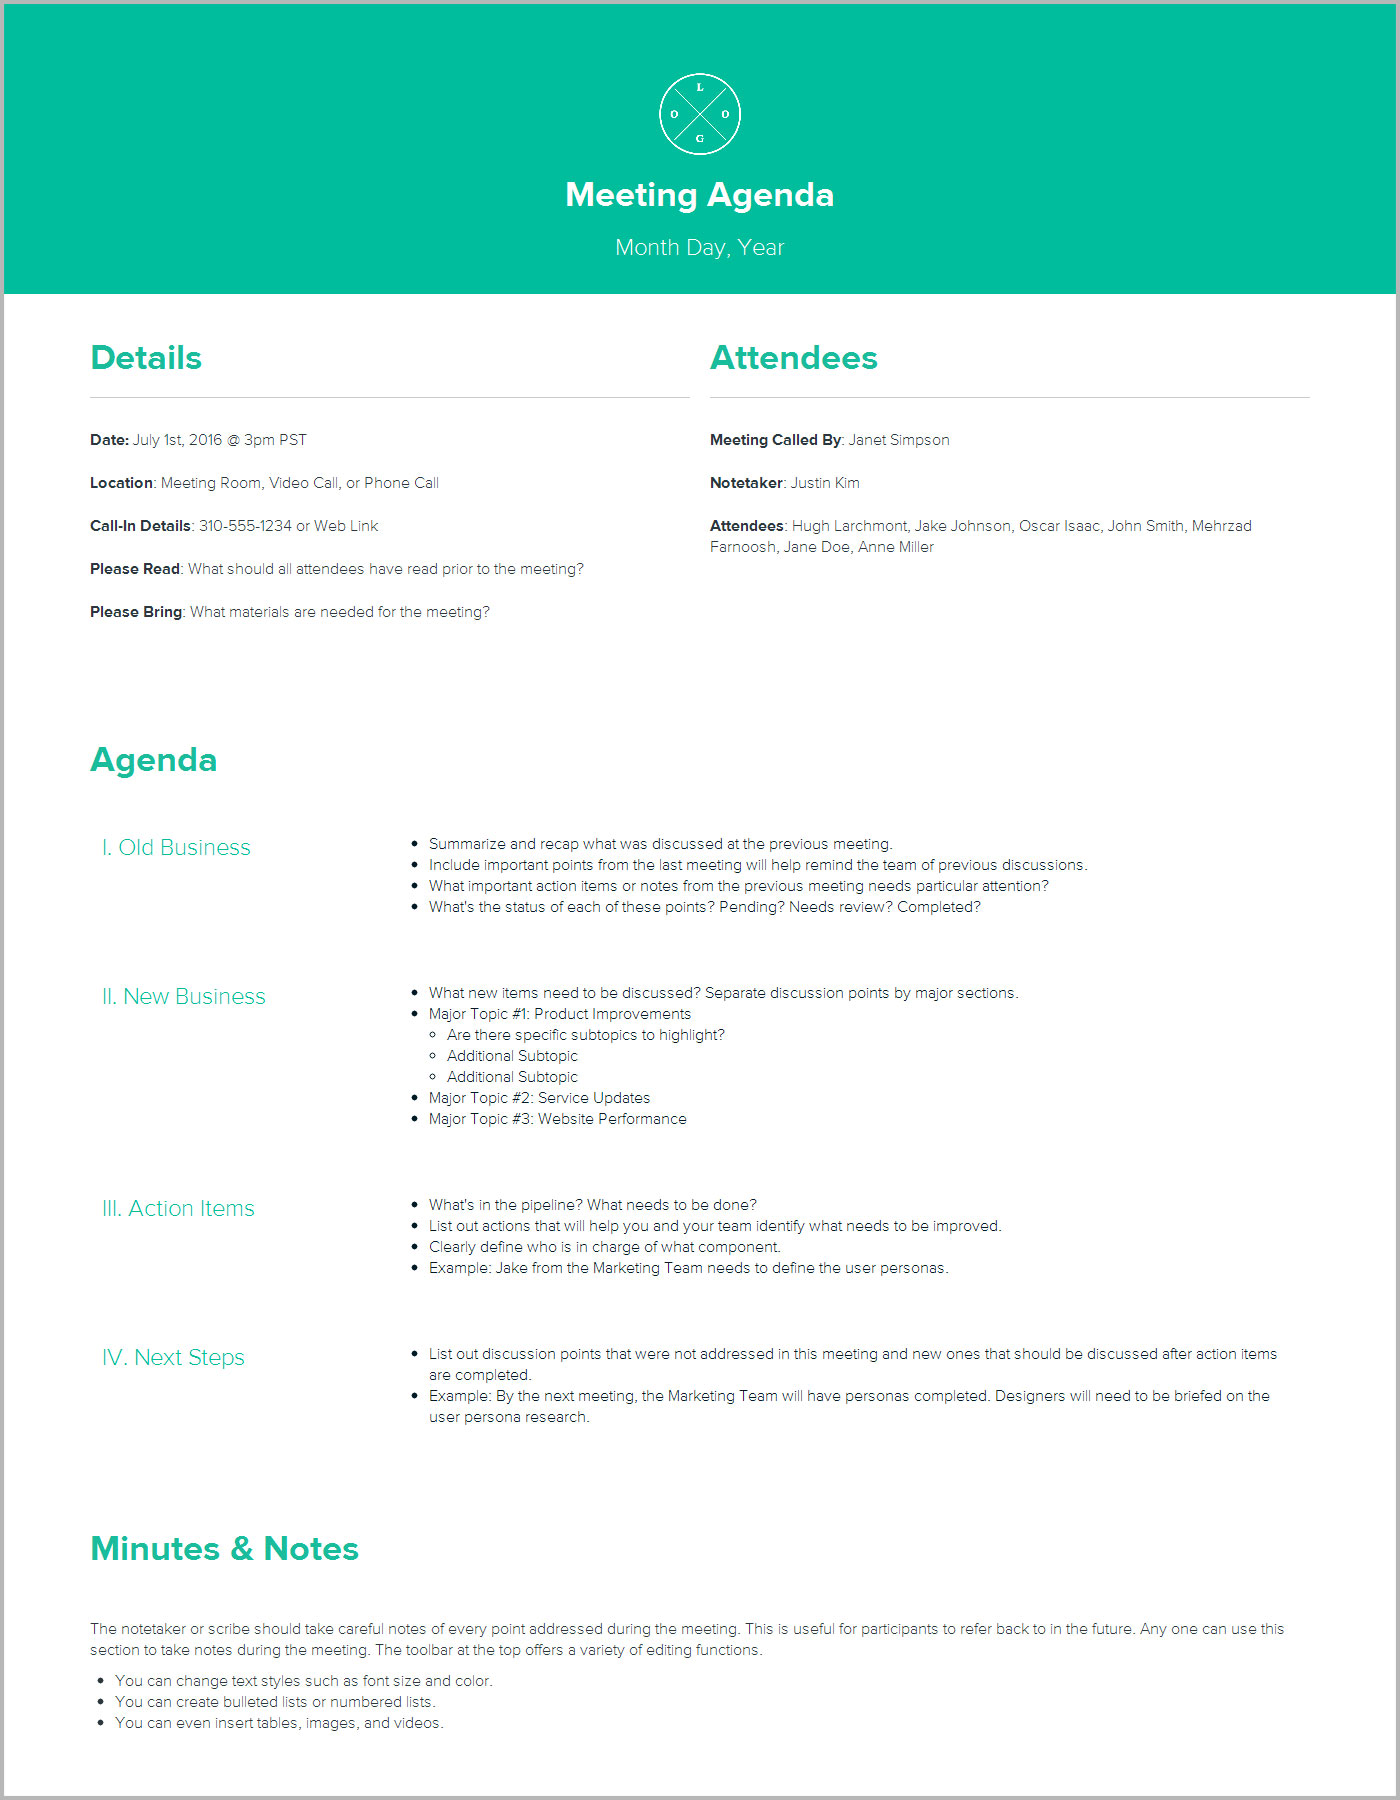 Meeting Agenda Template By Xtensio